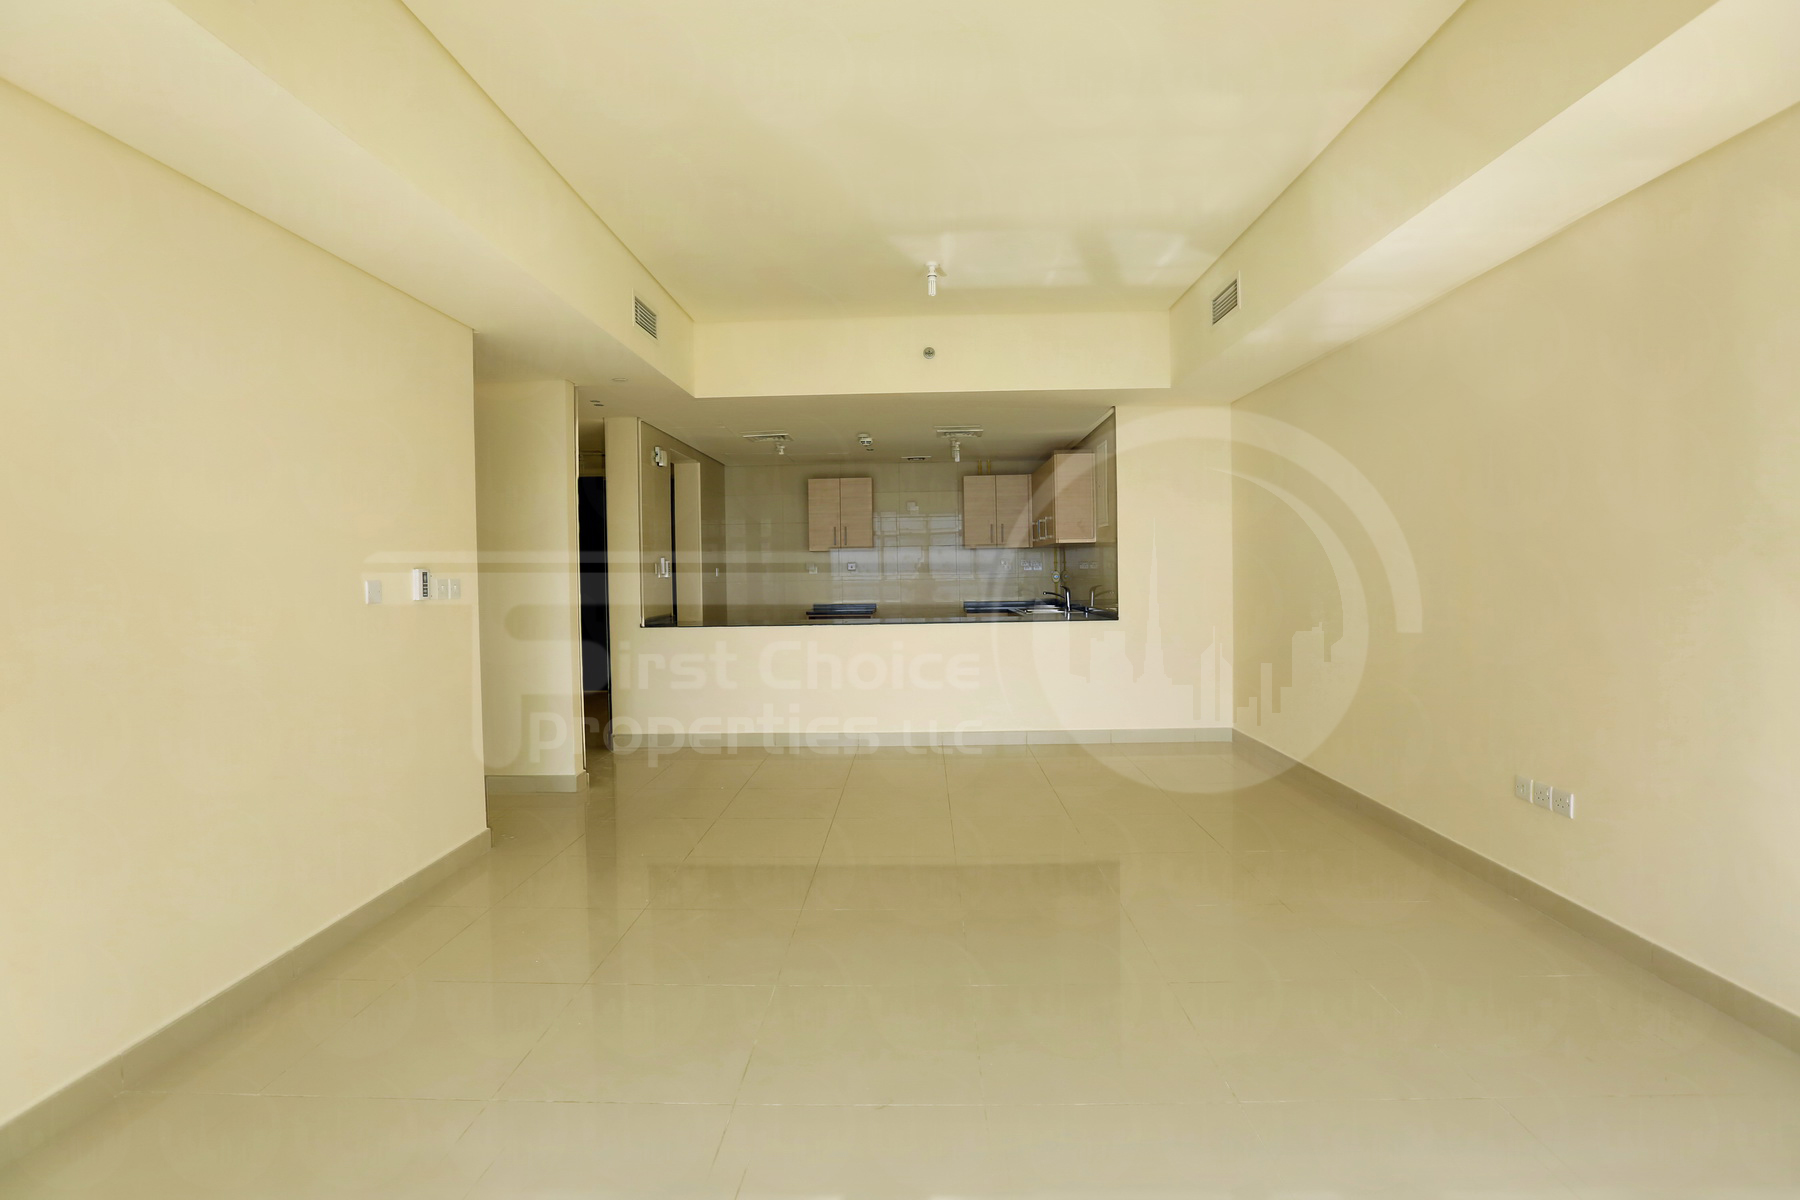 2 Bedroom Apartment - UAE - Abu Dhabi - Al Reem Island - Tala Tower (7).JPG